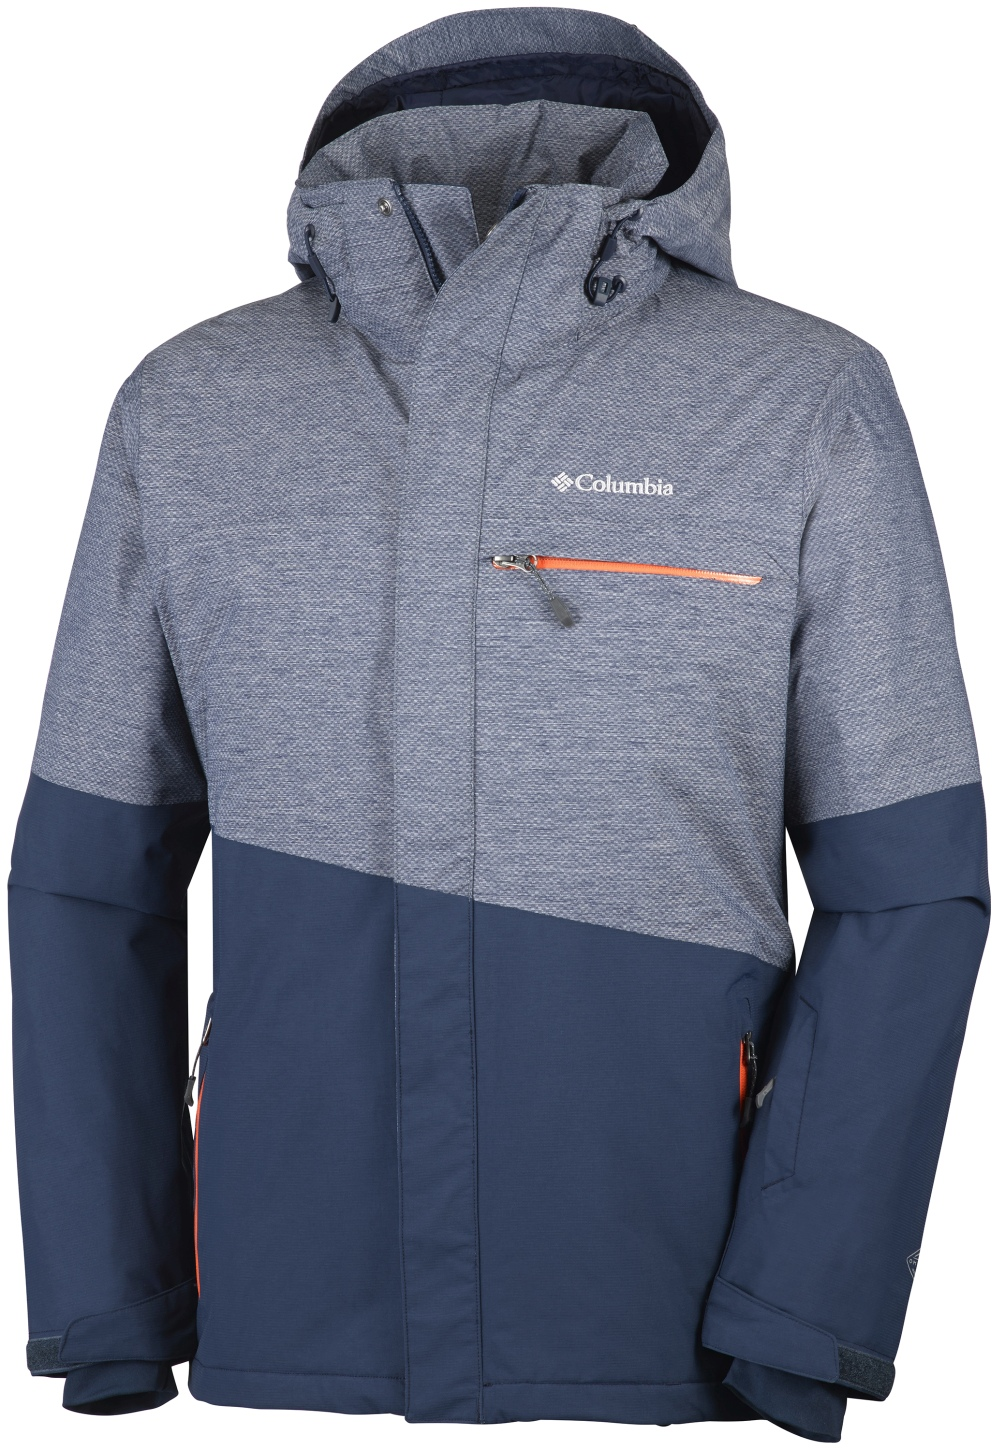 Columbia Men's Piste Beast Ski Jacket Collegiate Navy-30